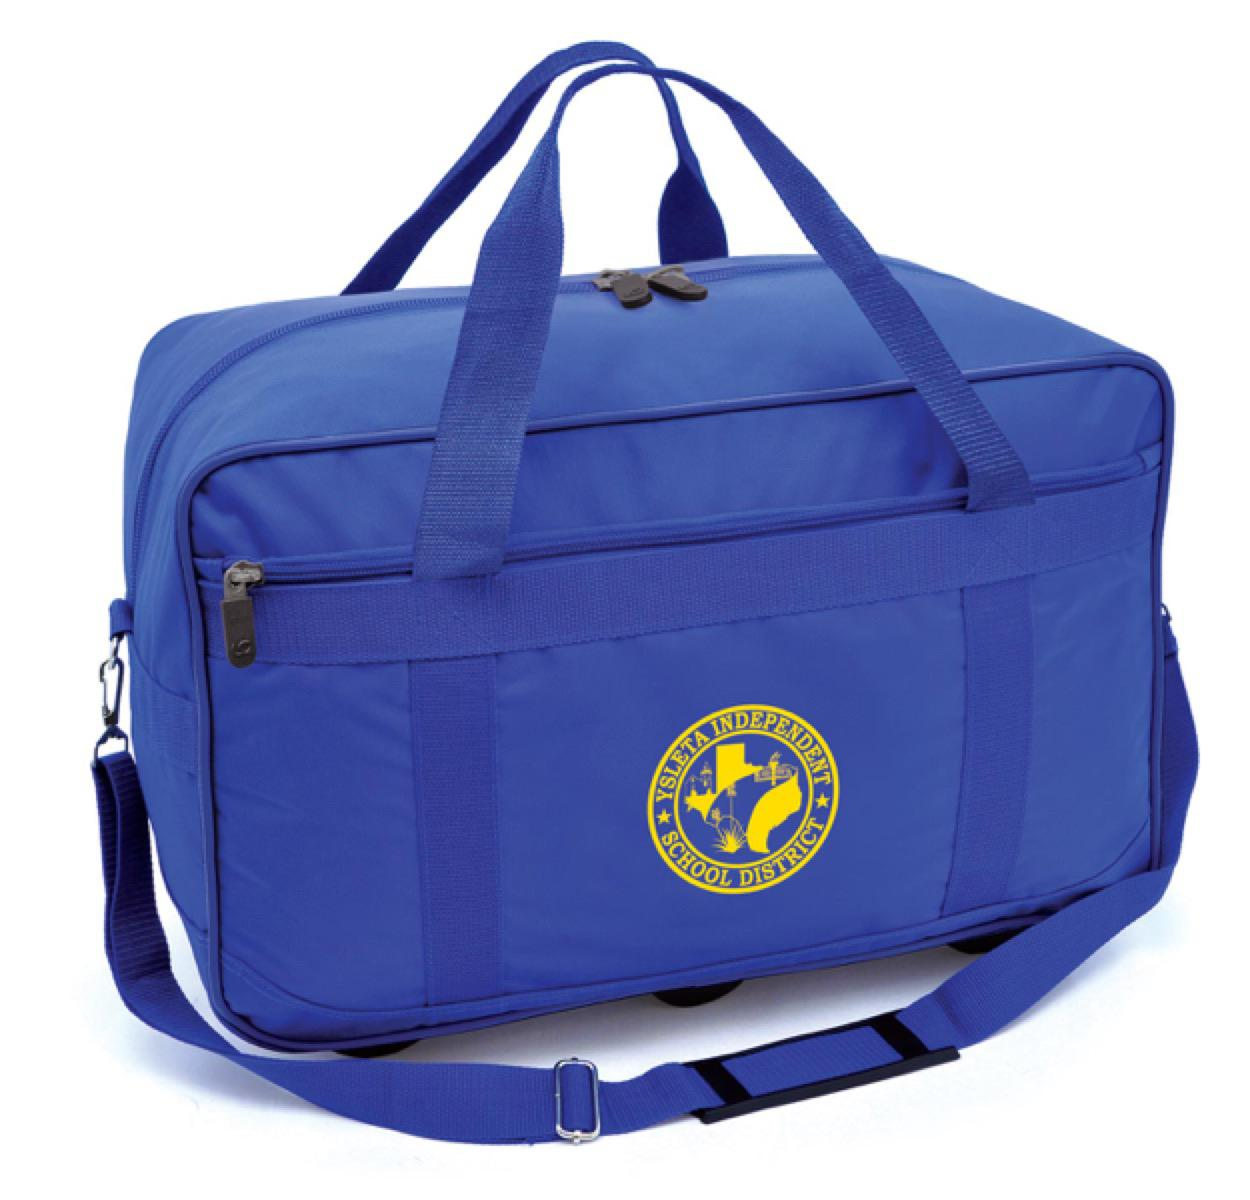 Estelle Sports Bag, From 37.29